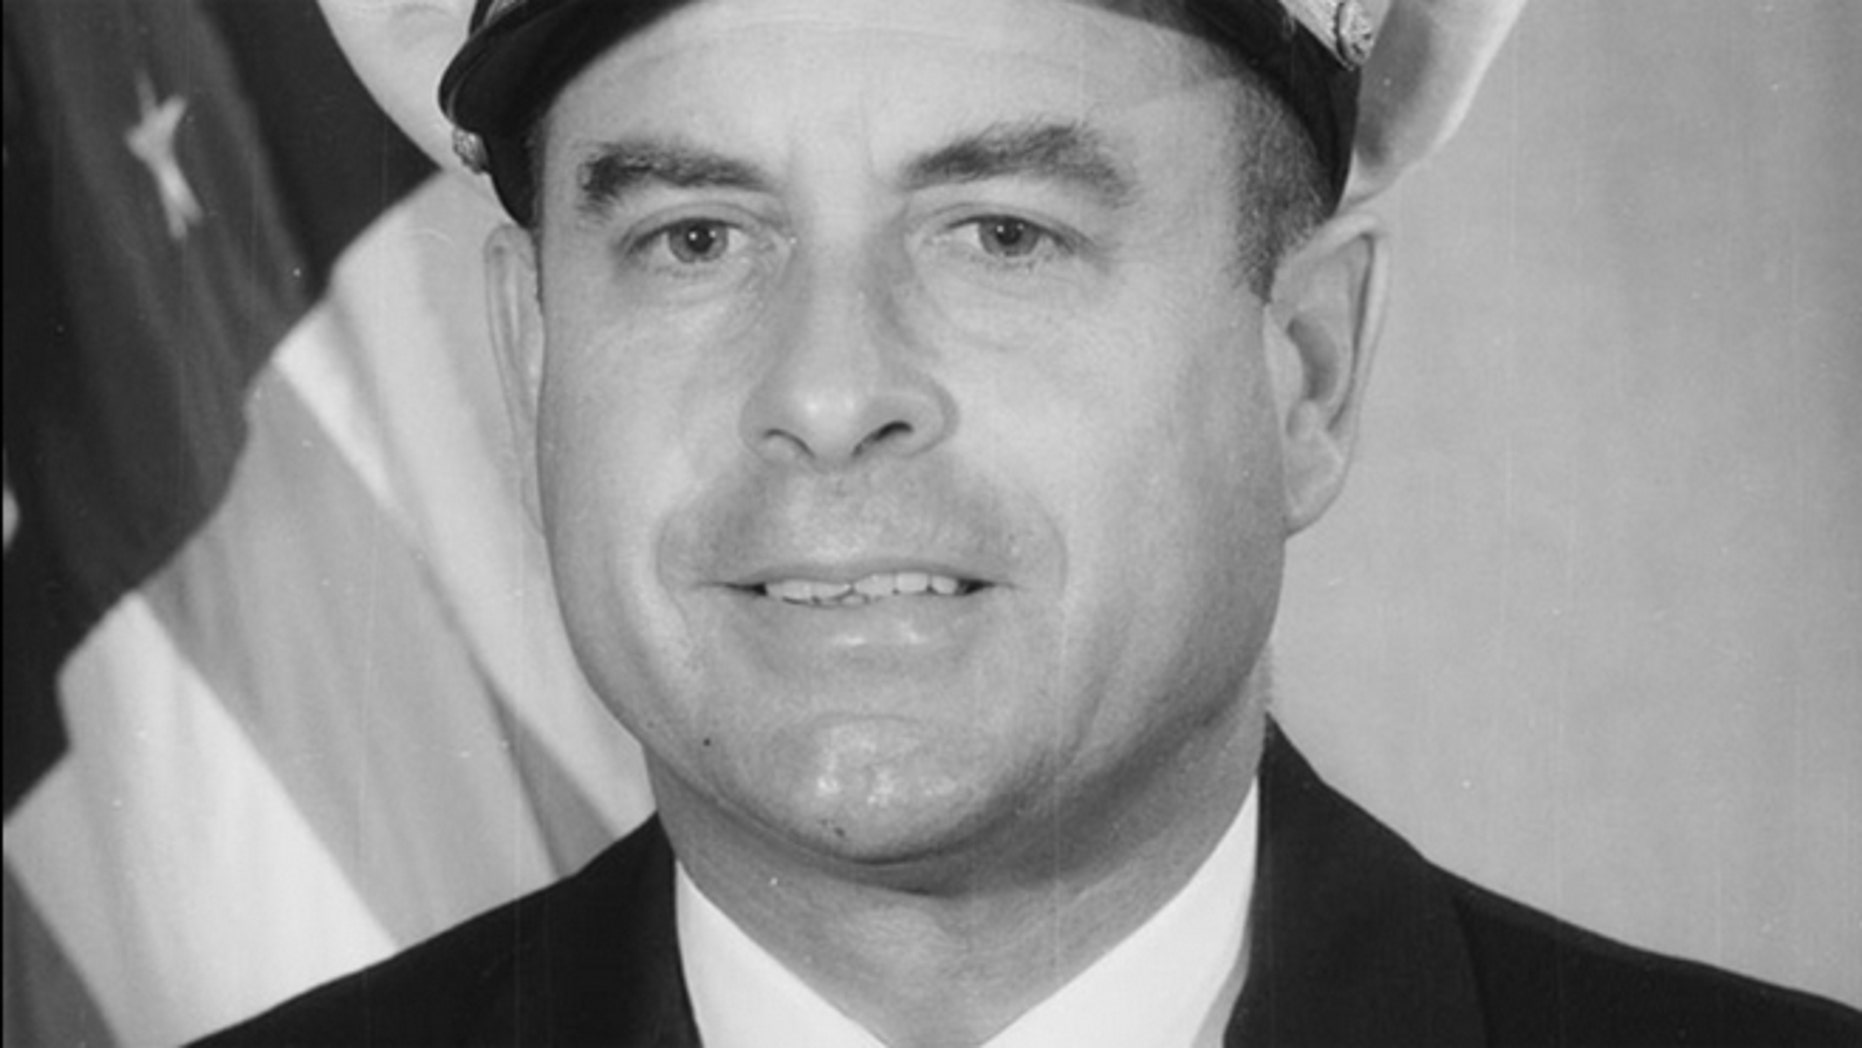 Jeremiah A. Denton, Jr, was a US Navy Commander and later a POW in Vietnam.